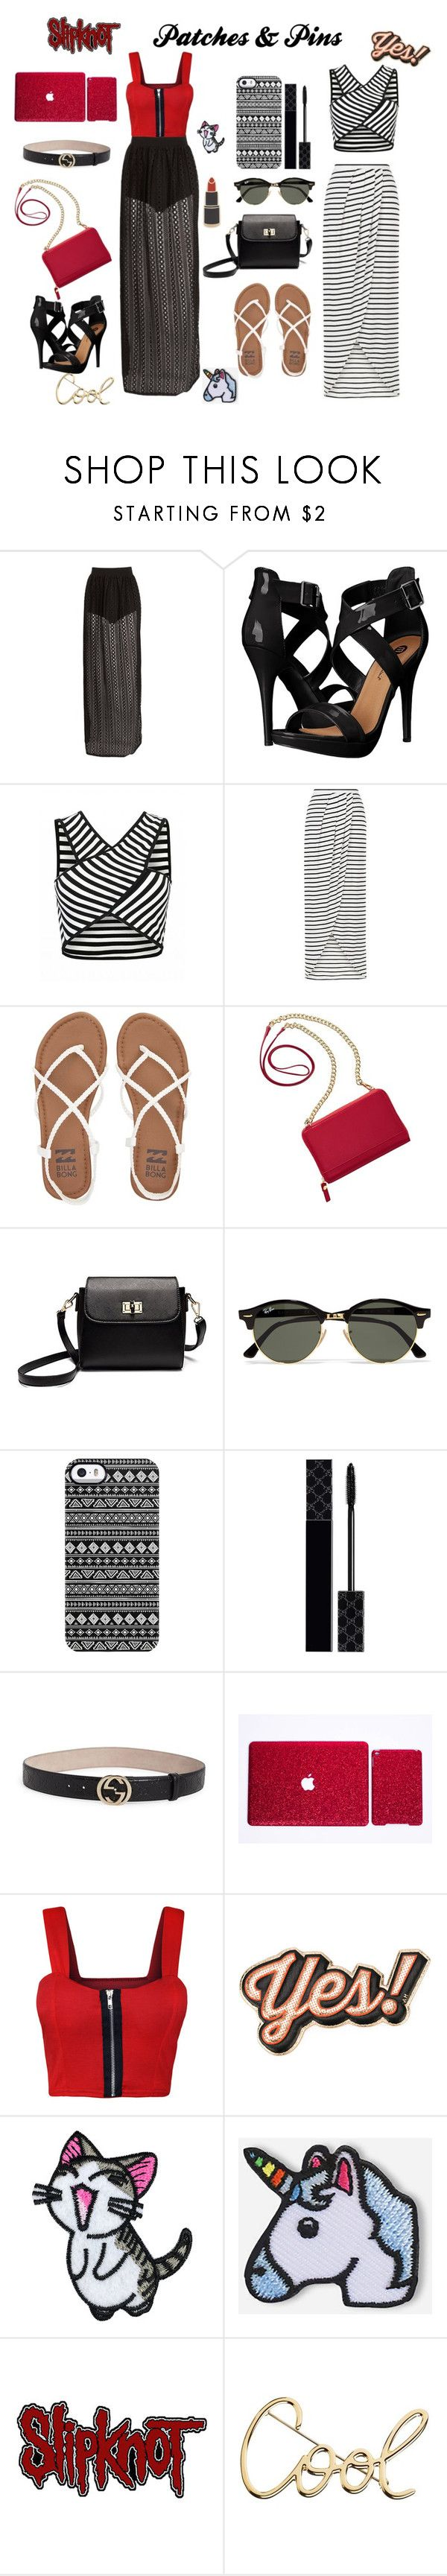 """Patches and Pins"" by anar120899 ❤ liked on Polyvore featuring Boohoo, Michael Antonio, New Look, Billabong, TravelSmith, Ray-Ban, Giuseppe Zanotti, Gucci, WearAll and Anya Hindmarch"